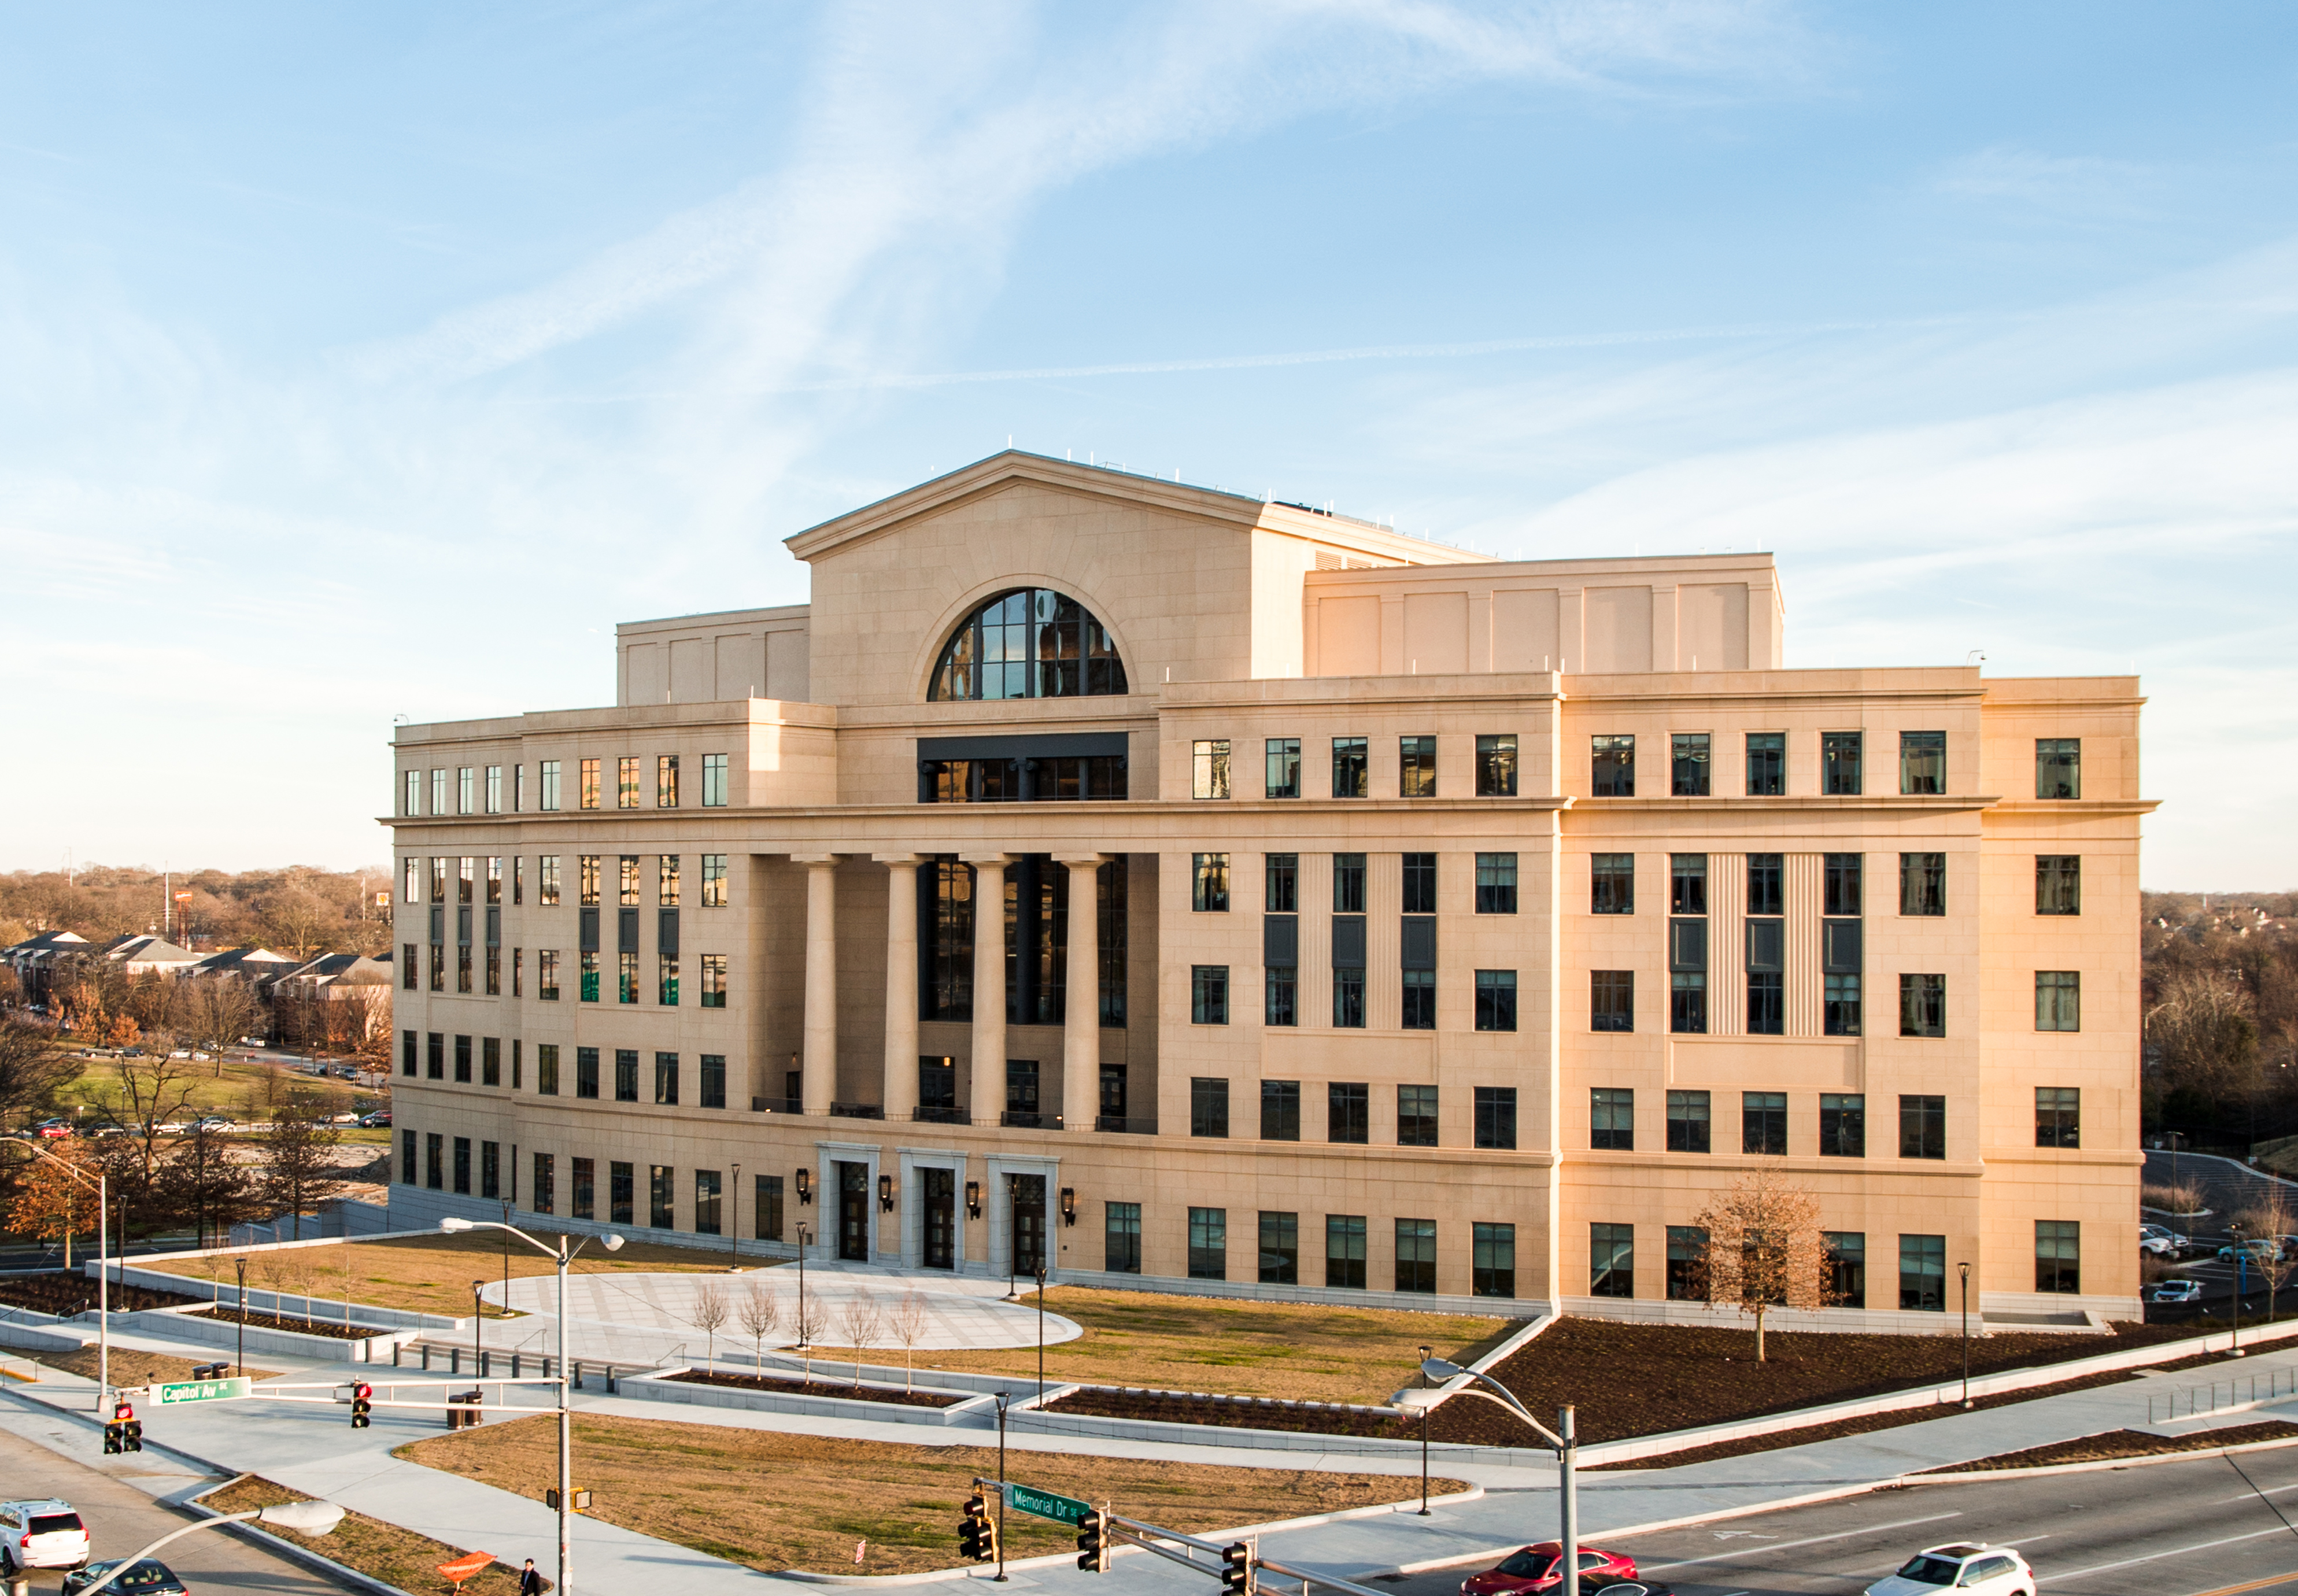 A exterior view of the new court building, with large columns and other classical features.